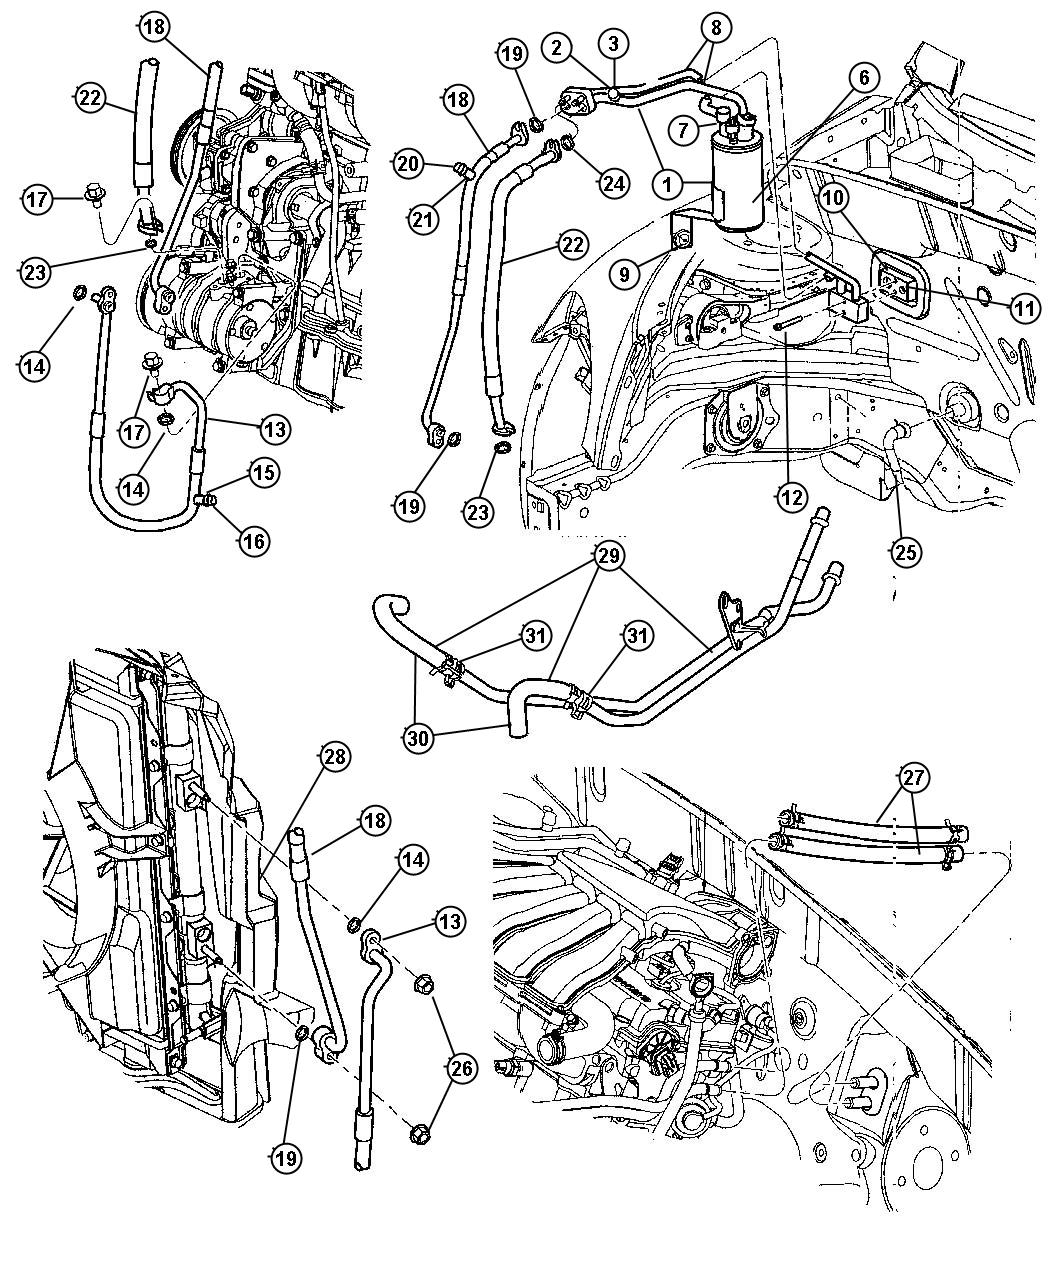 Chrysler Air Conditioner Parts Diagram Wiring Diagram For Free